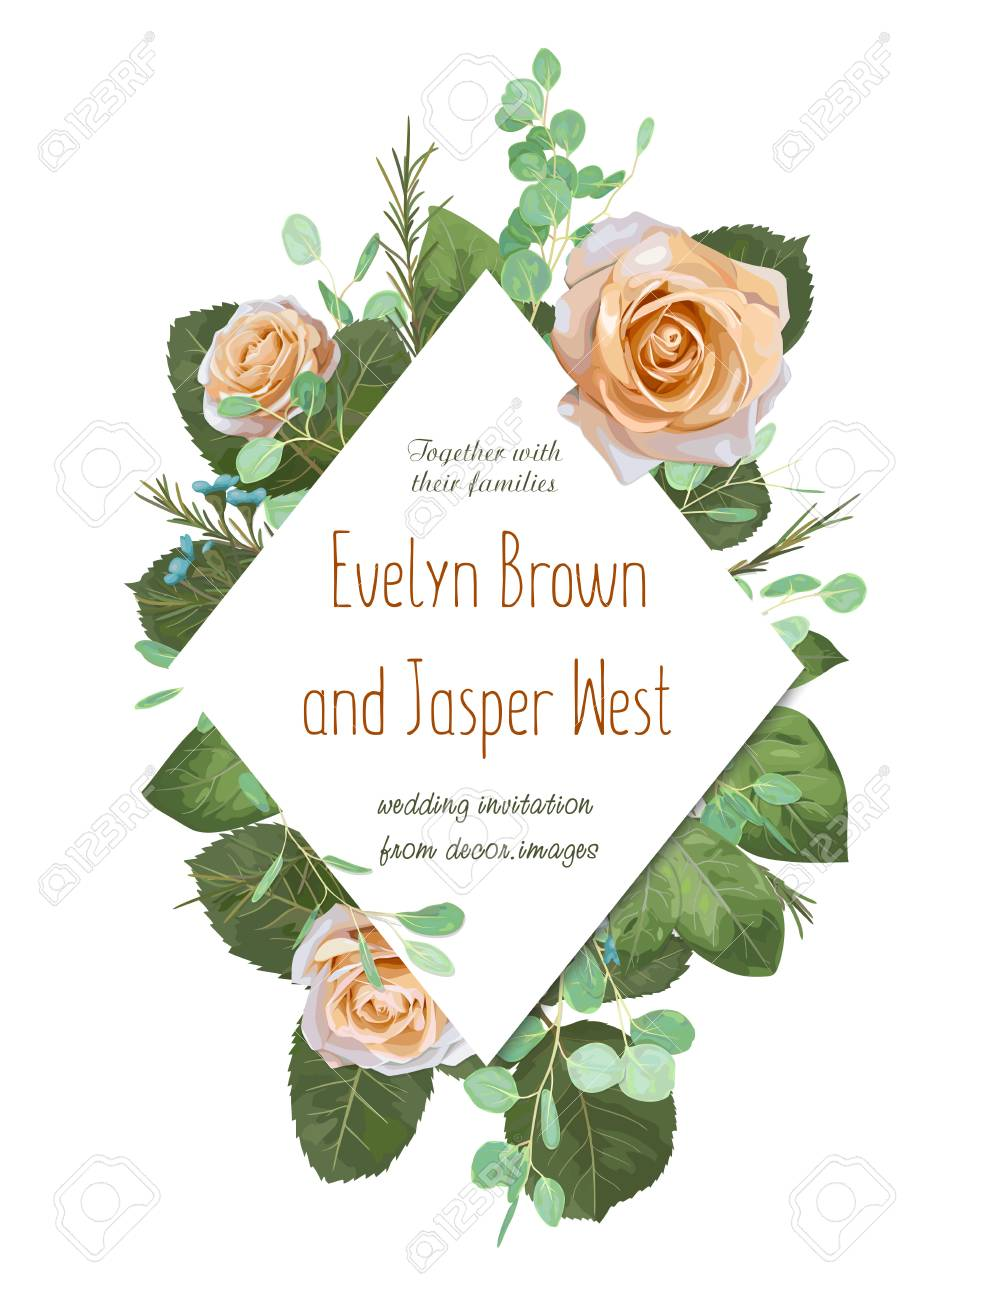 Floral Wedding Invitation Elegant Invite Card Vector Design Garden Flower Creamy Rose Waxflower Green Eucalyptus Tender Greenery Diamond Shaped